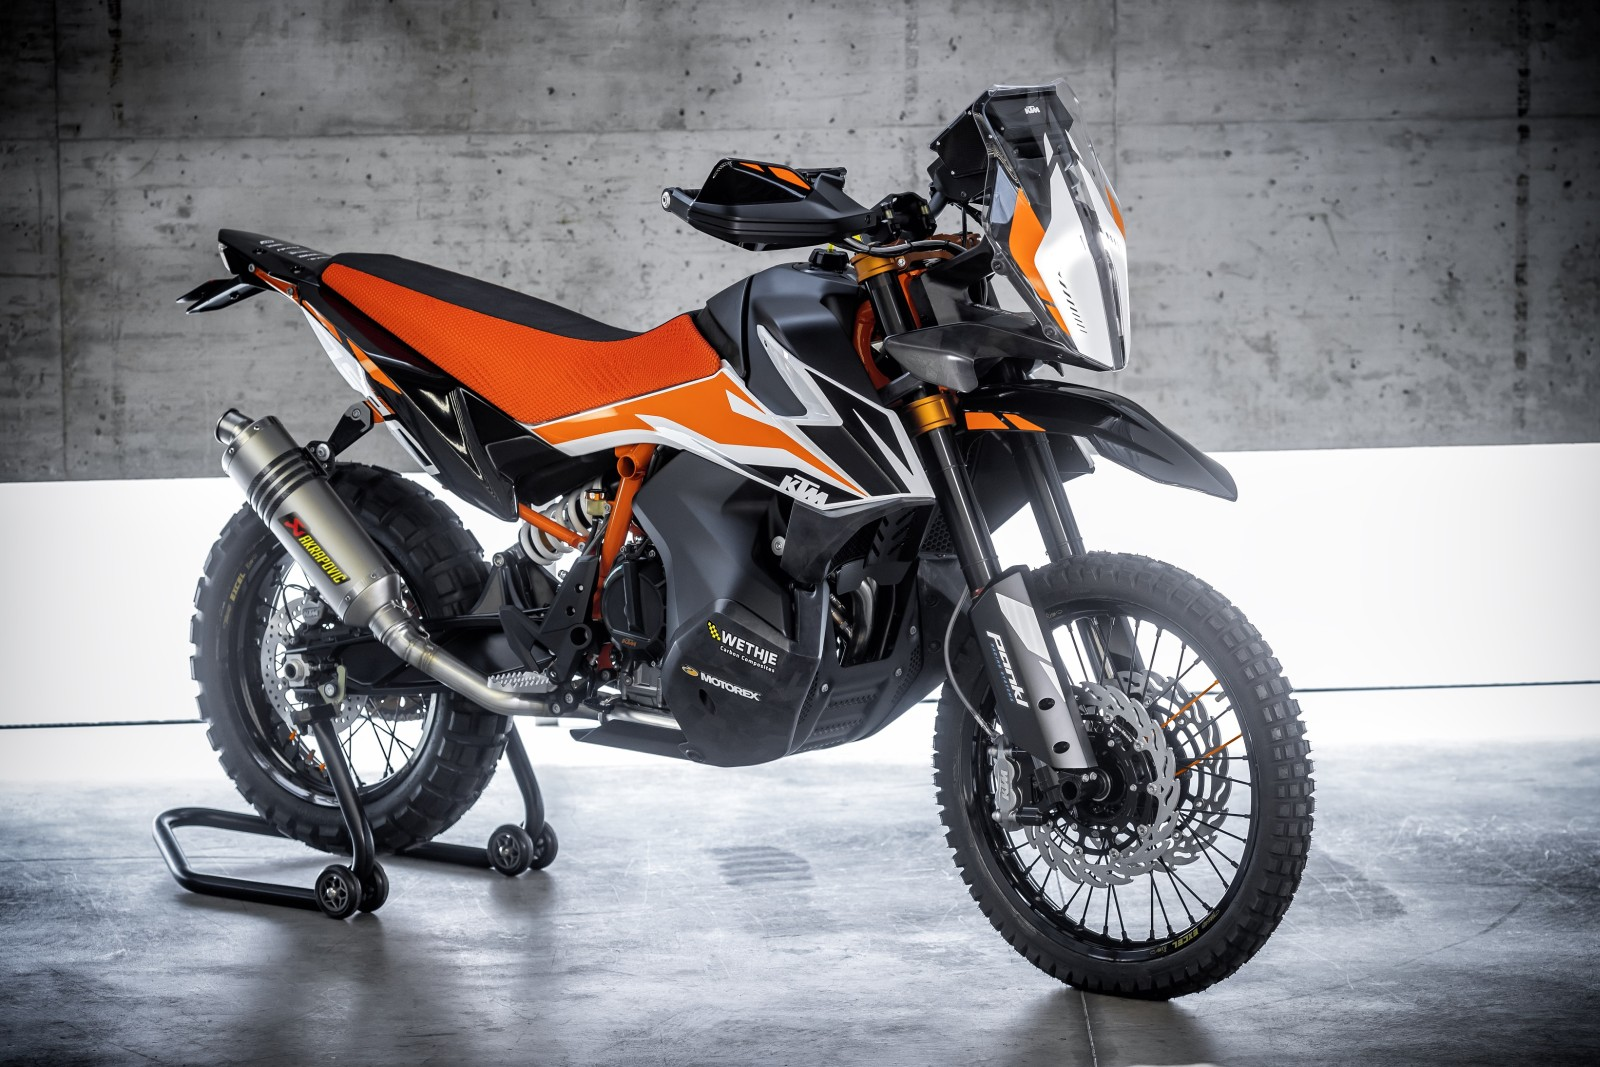 KTM-790-ADVENTURE-R-Prototype-Official-Image-1